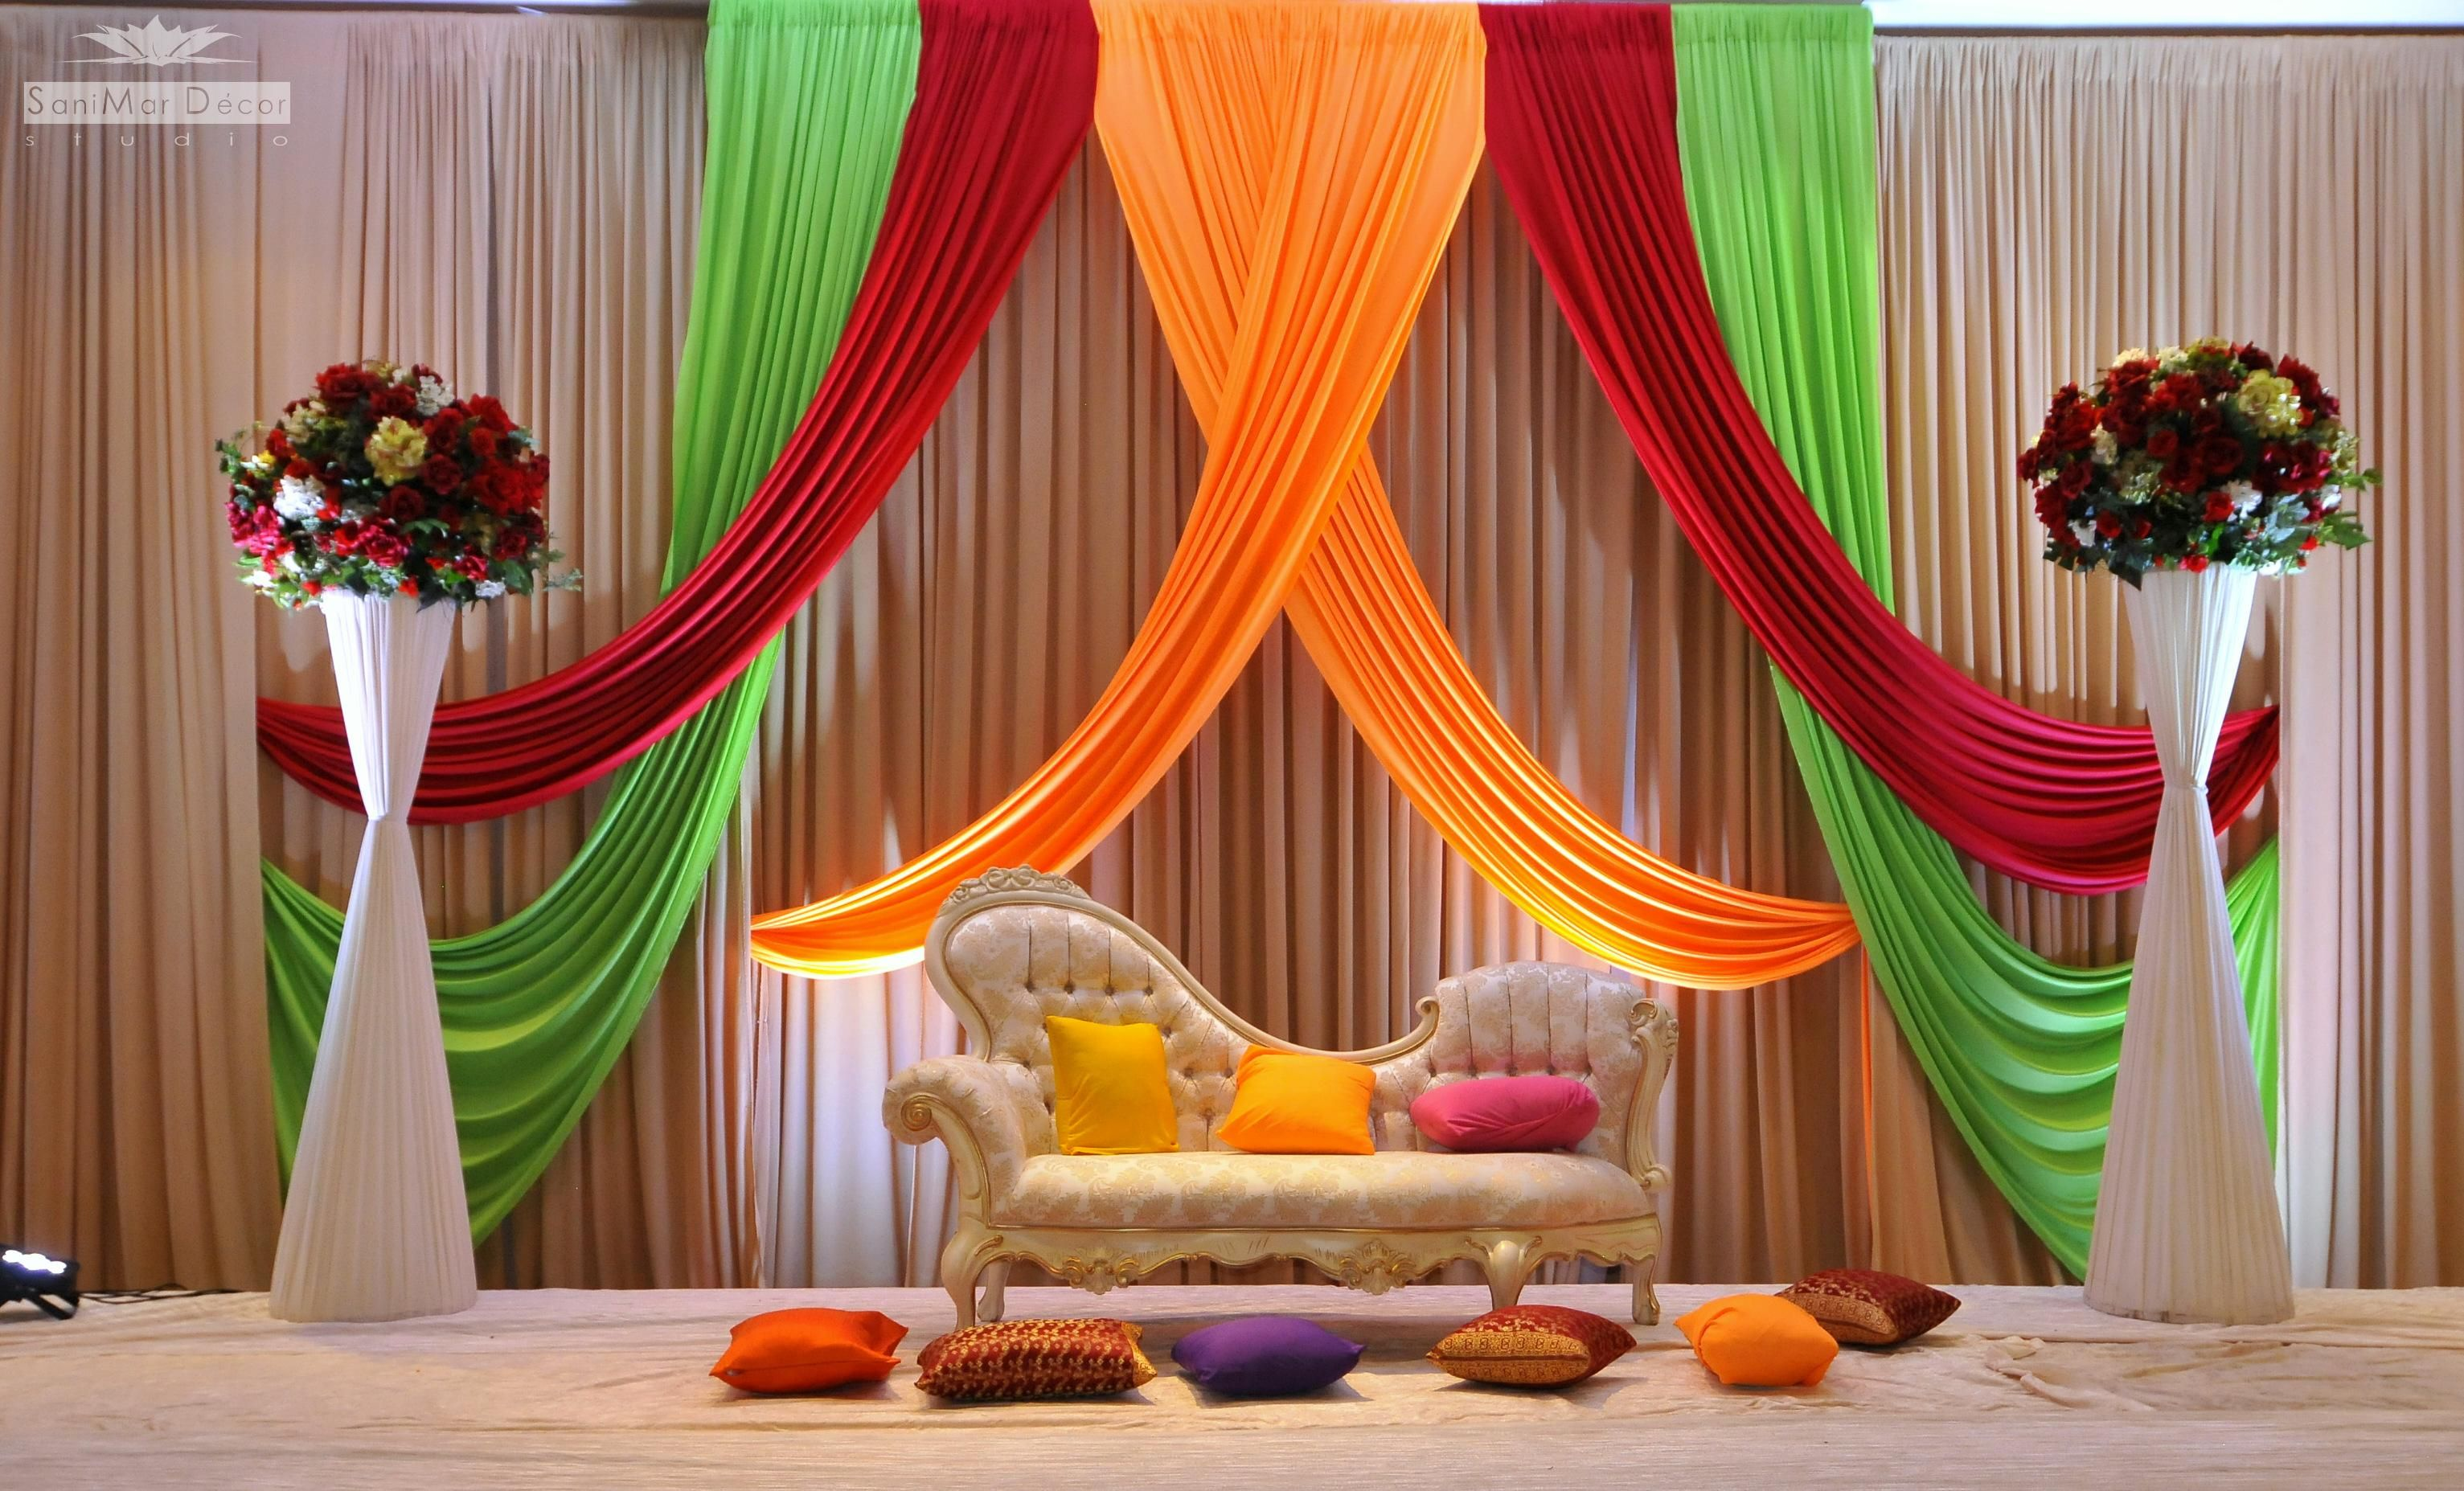 Wedding stage decoration wedding decorations natural Simple flower decoration ideas